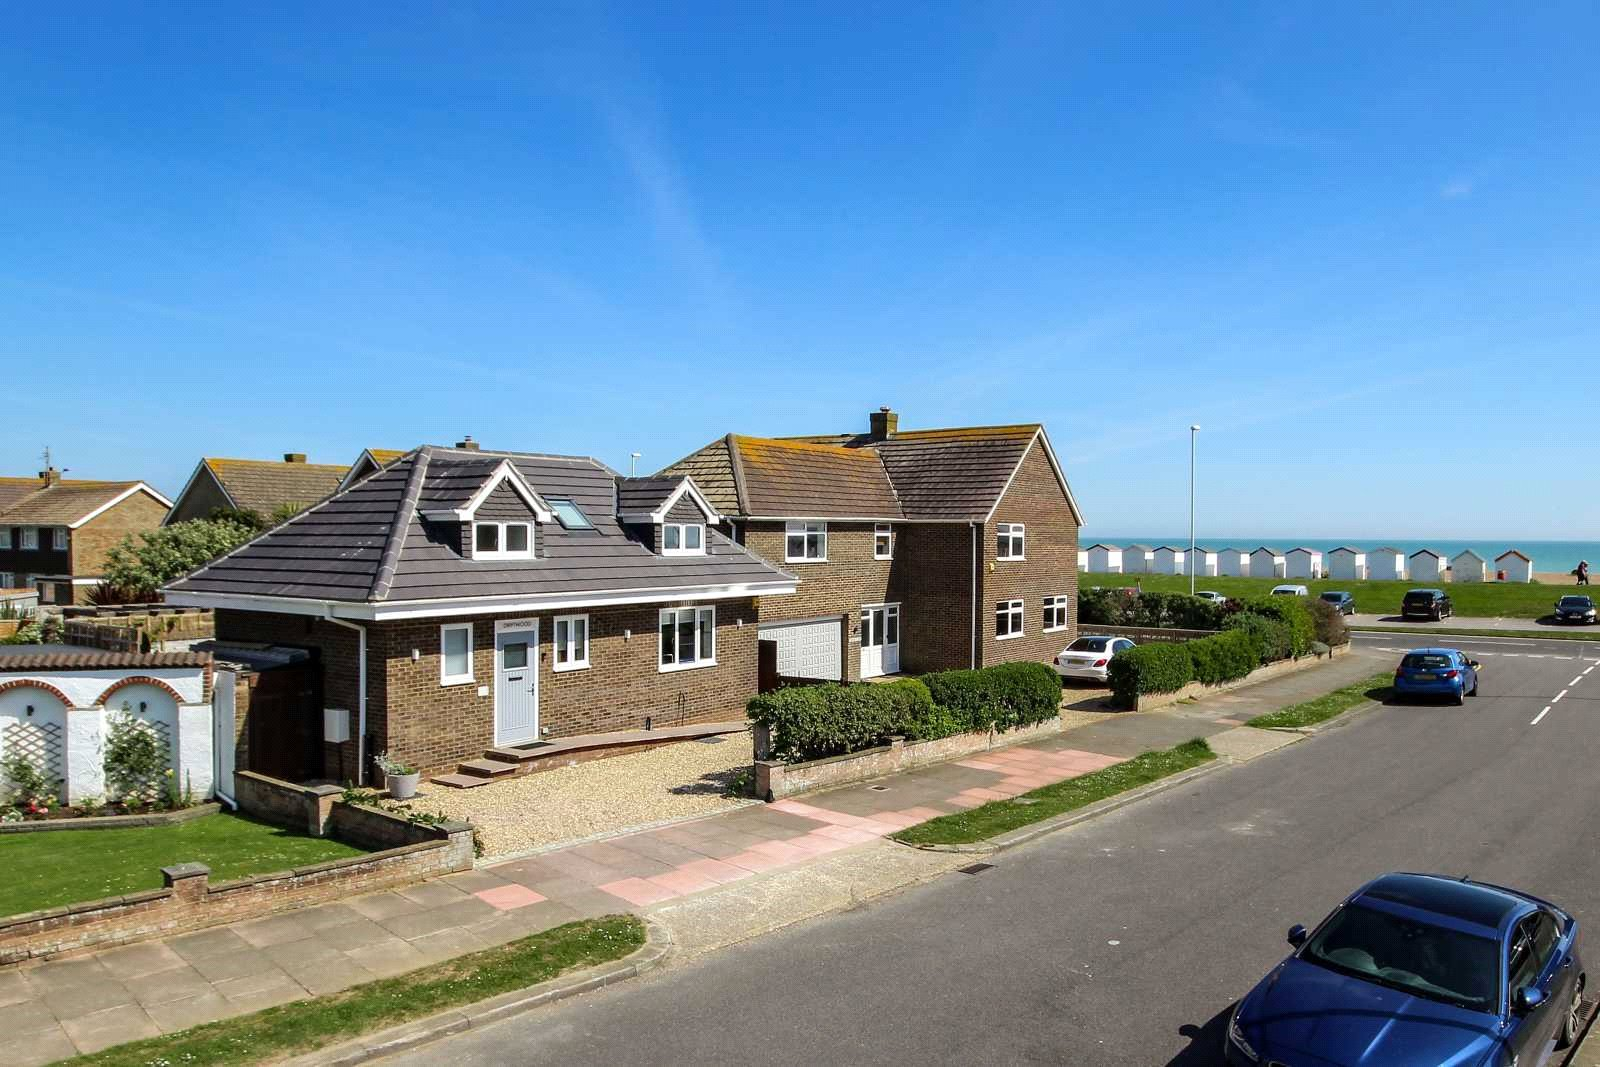 3 bed house for sale in Alinora Crescent, Goring-by-Sea, BN12